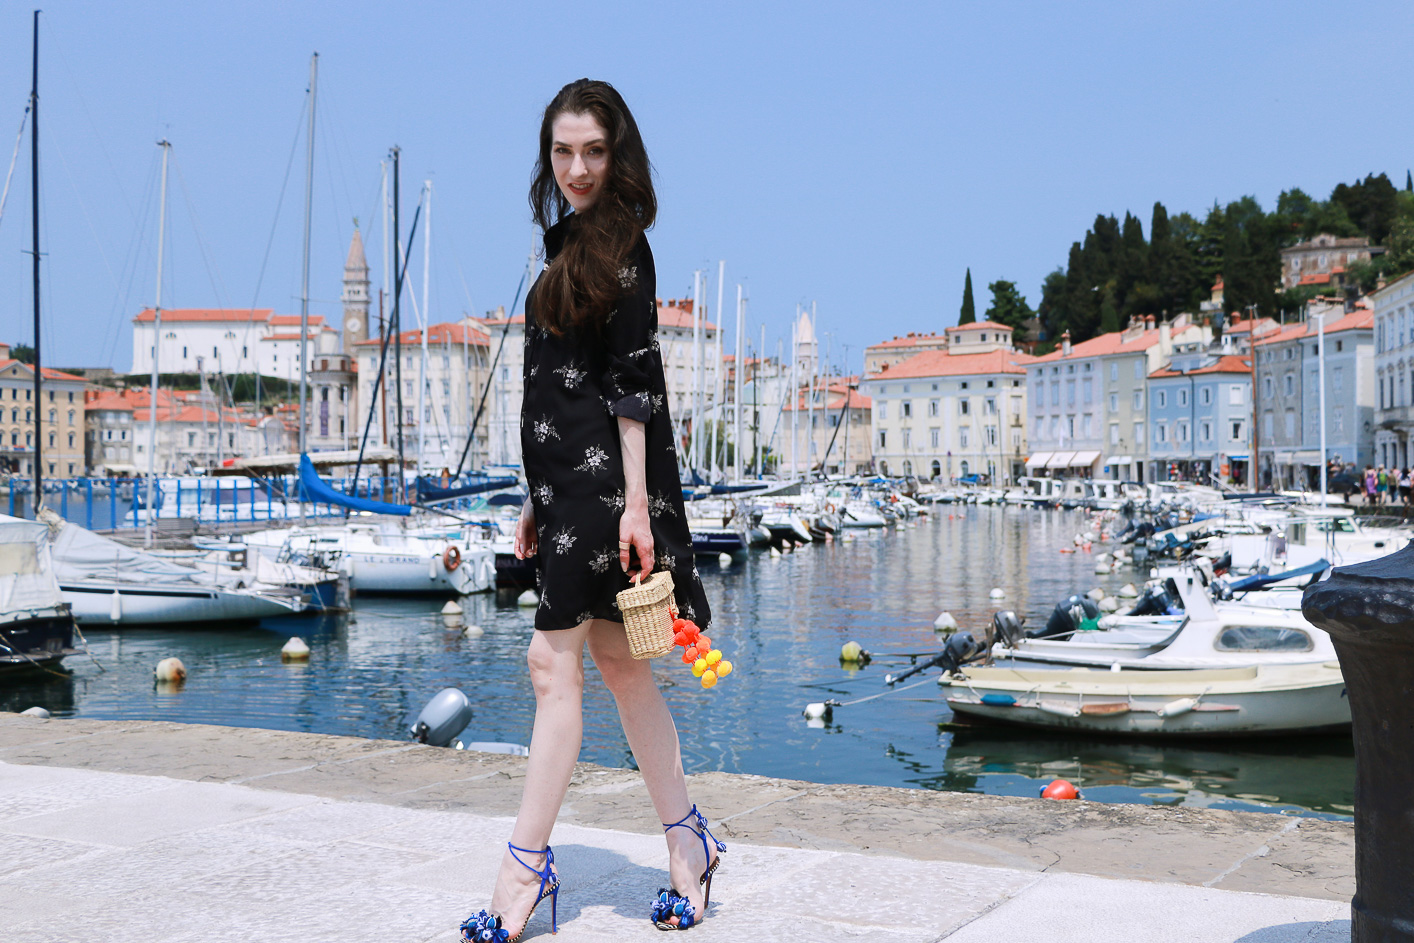 Fashion blogger Veronika Lipar of Brunette From Wall Street wearing dark floral dress and raffia basket bag in the seaside town